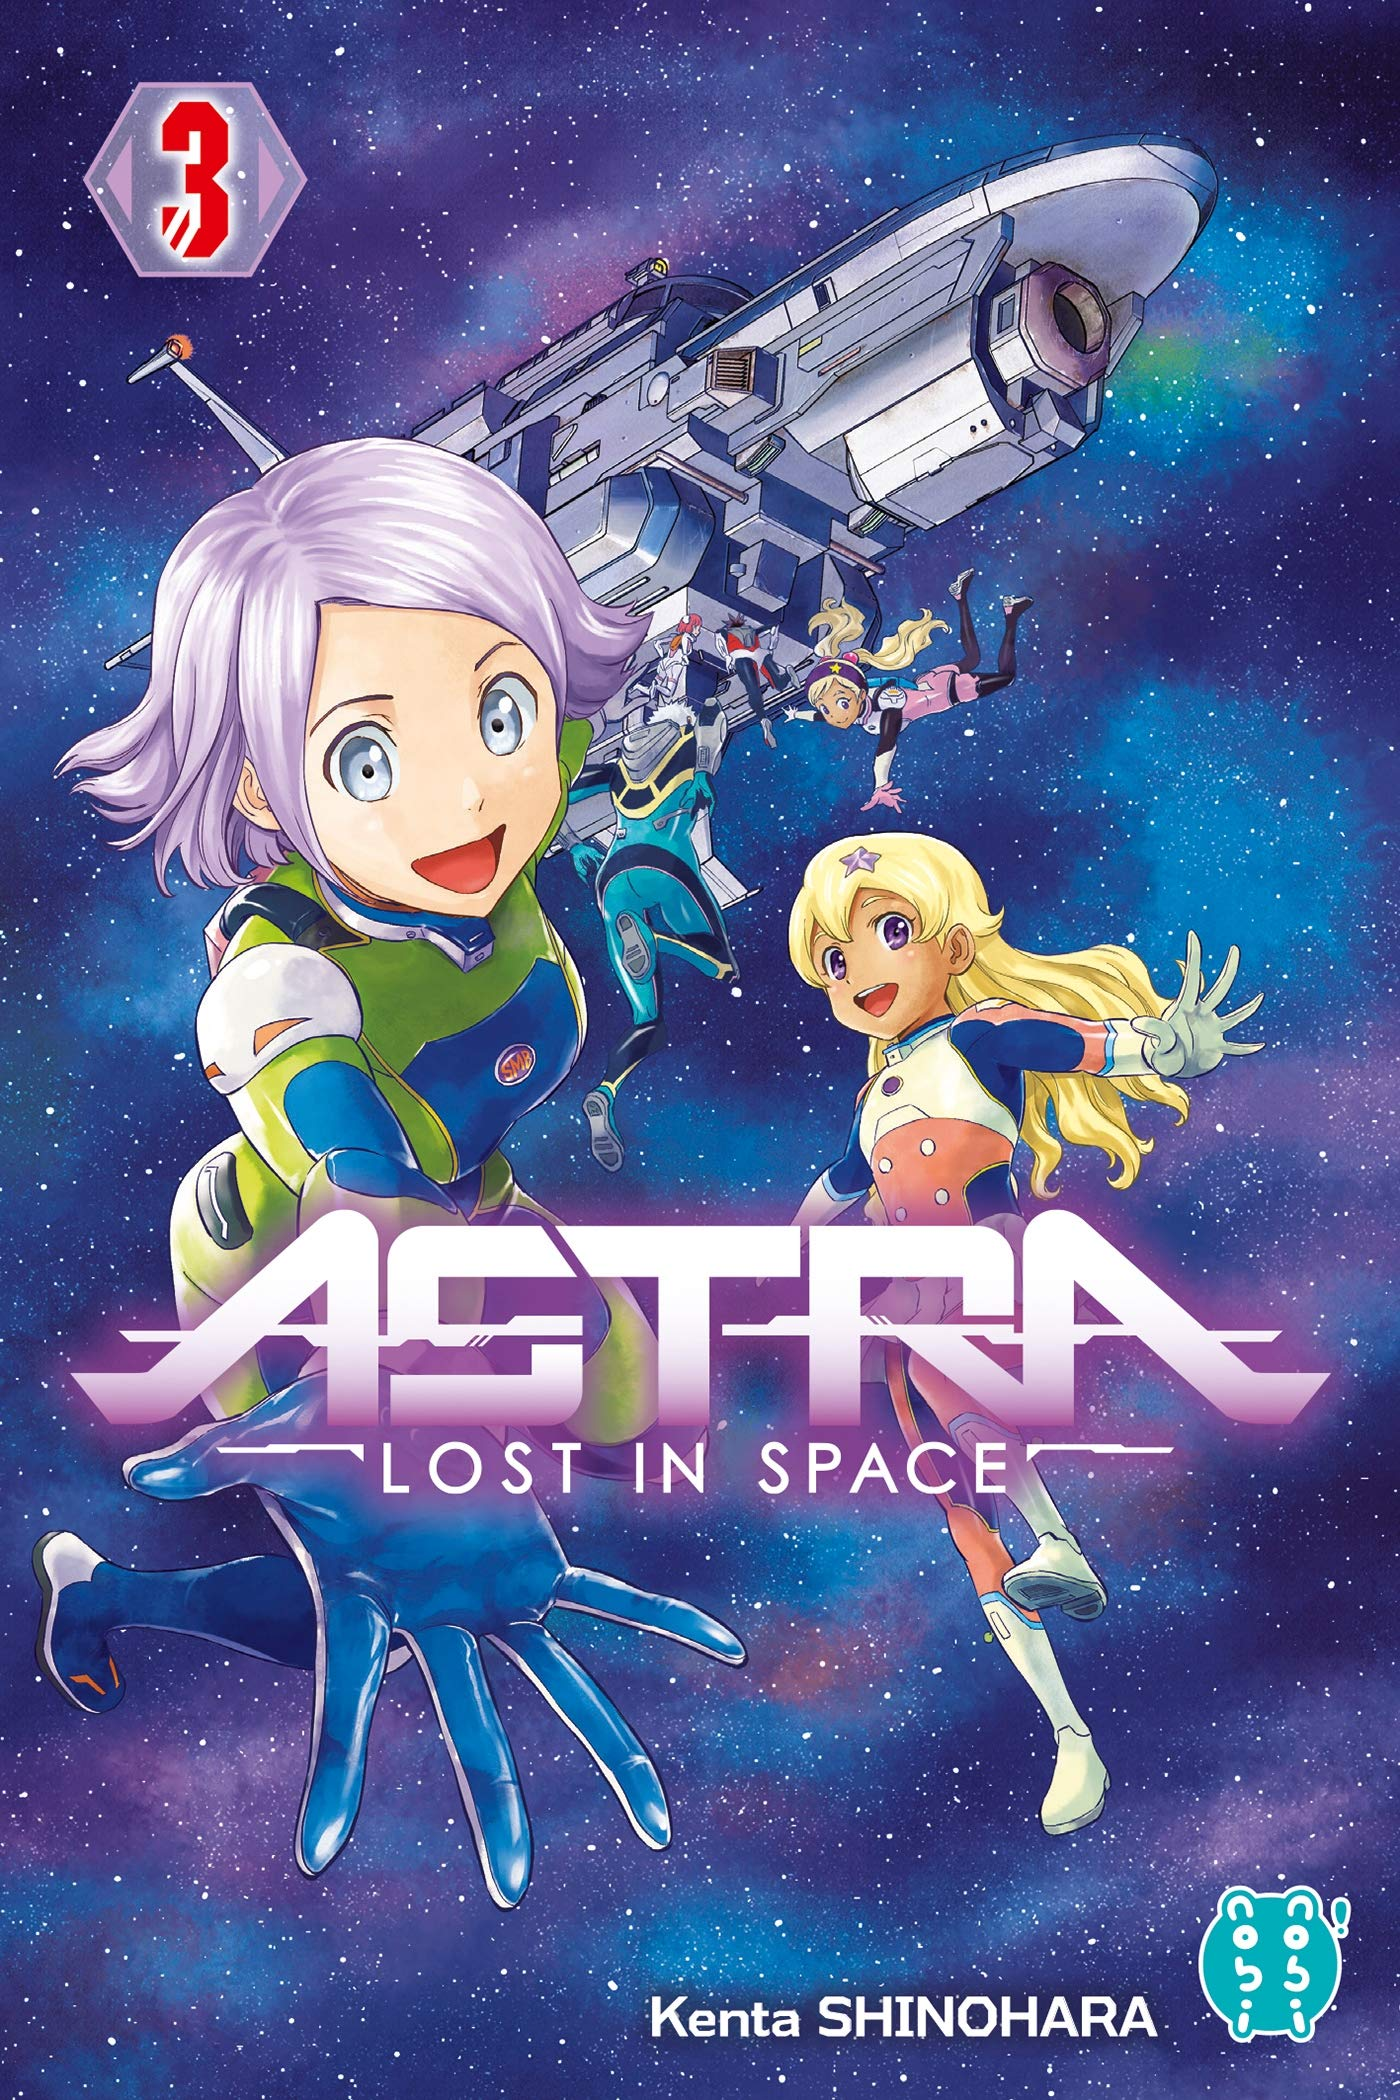 Astra - Lost in space 3